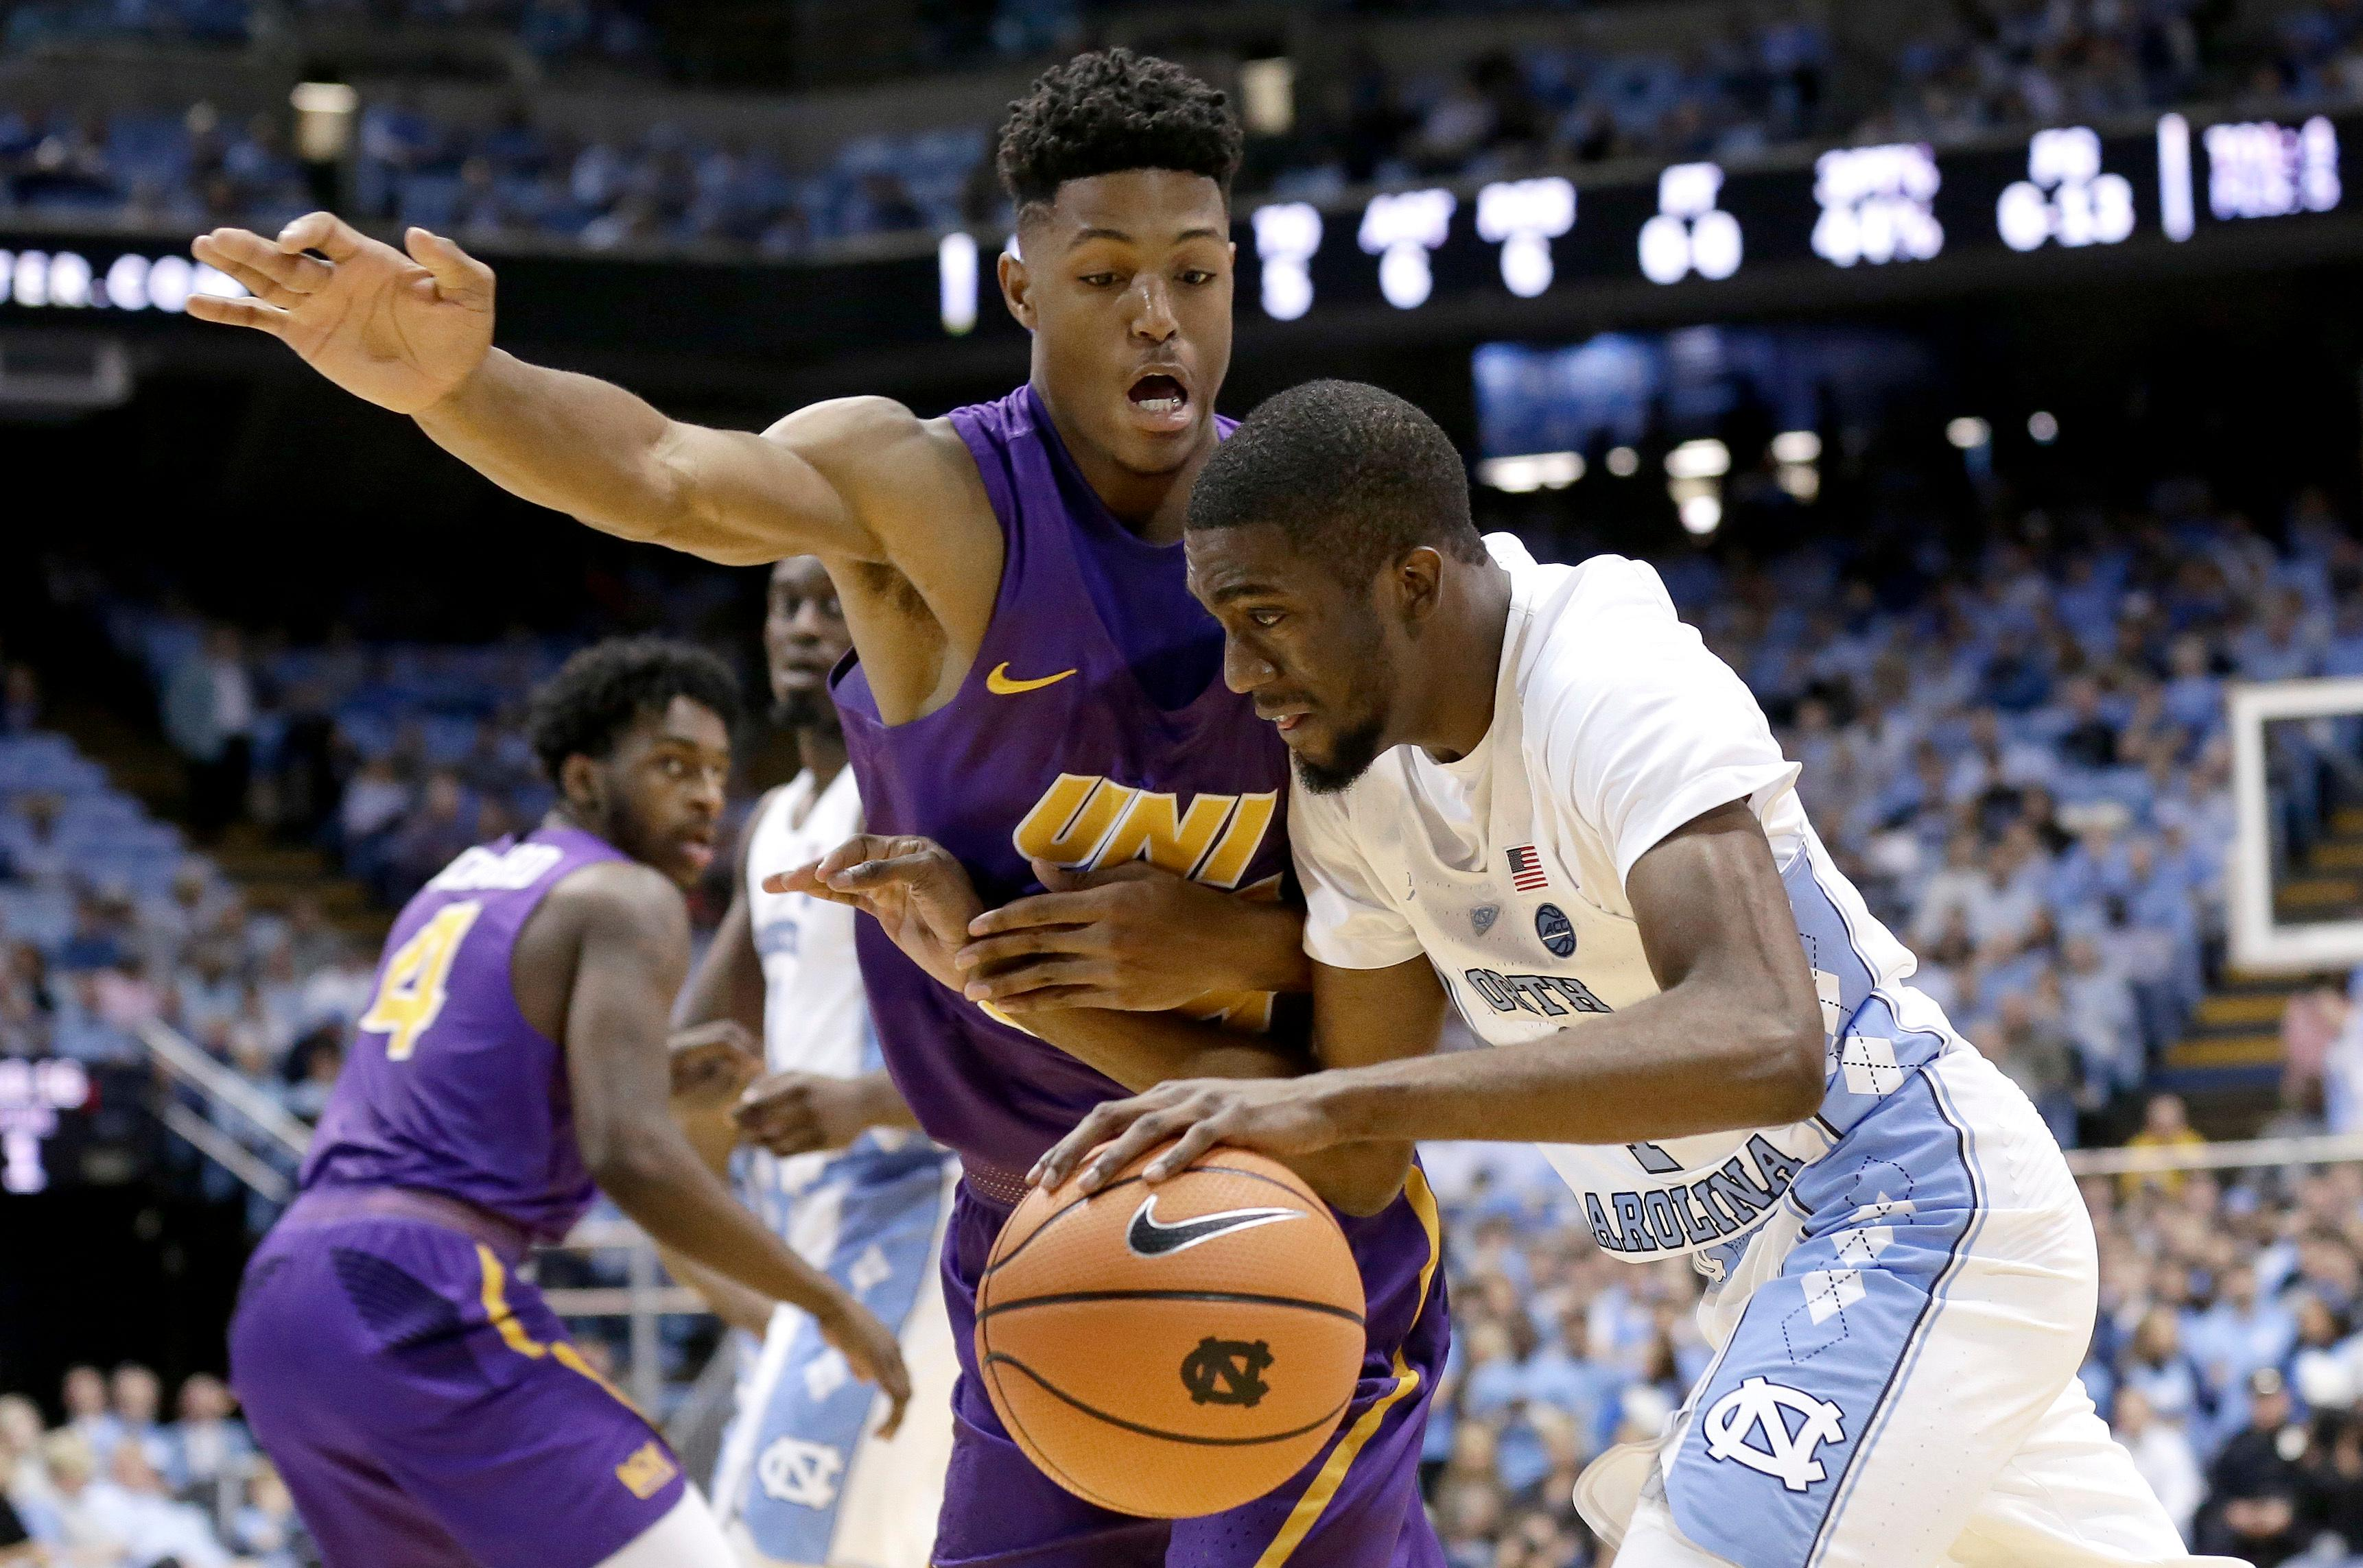 North Carolina's Brandon Robinson drives past Northern Iowa's Isaiah Brown during the first half of an NCAA college basketball game in Chapel Hill, N.C., Friday, Nov. 10, 2017. (AP Photo/Gerry Broome)